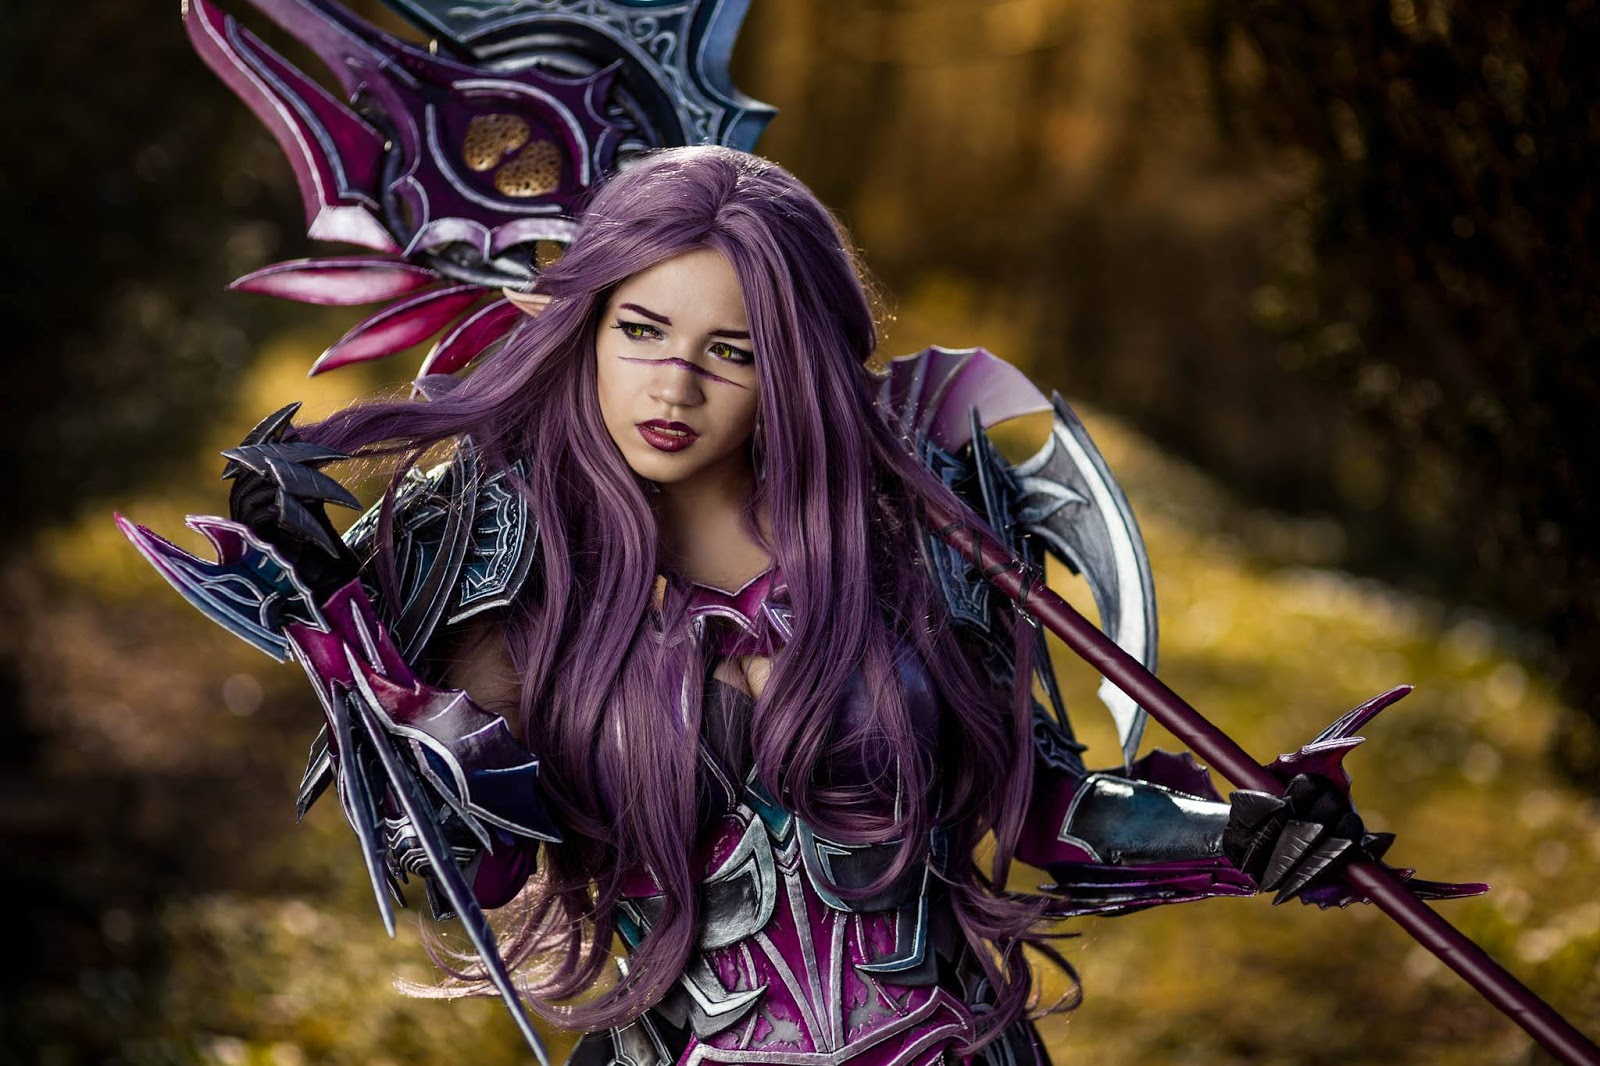 Aion Cosplay asmodian gladiator cosplay - aion   alienware arena